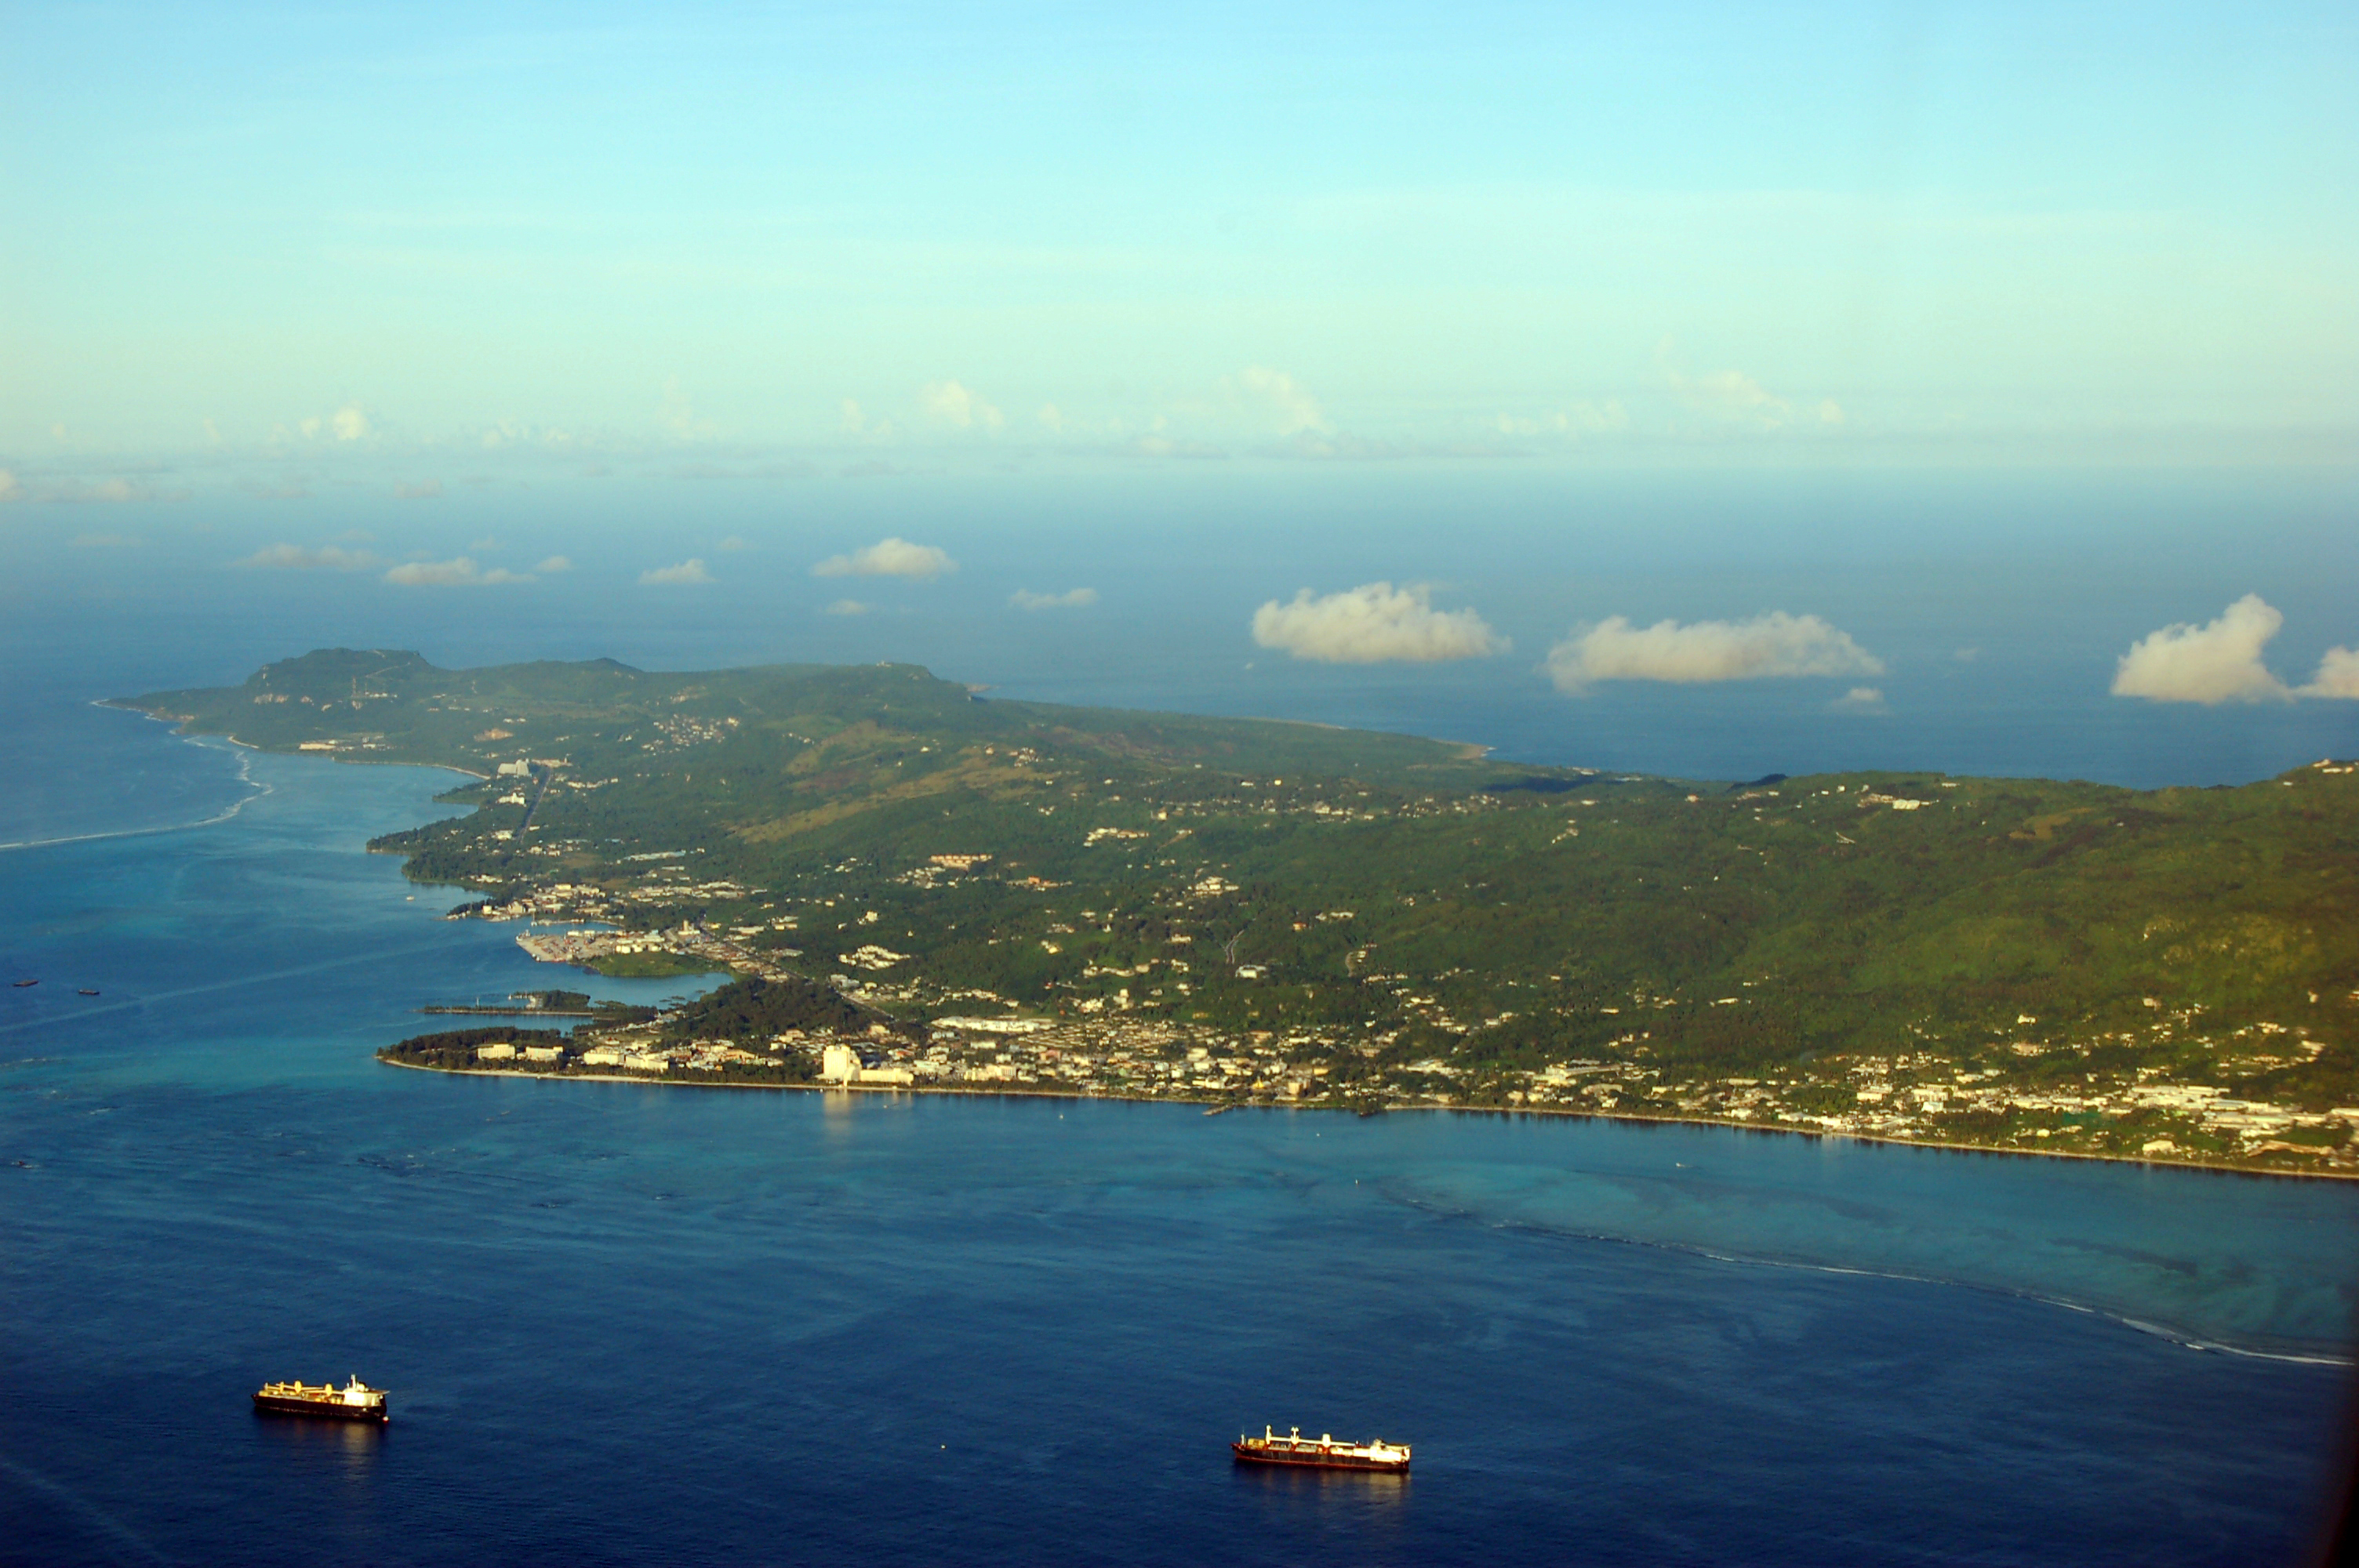 Aerial view of Saipan, Northern Mariana Islands, Photo taken on October 20, 2005.